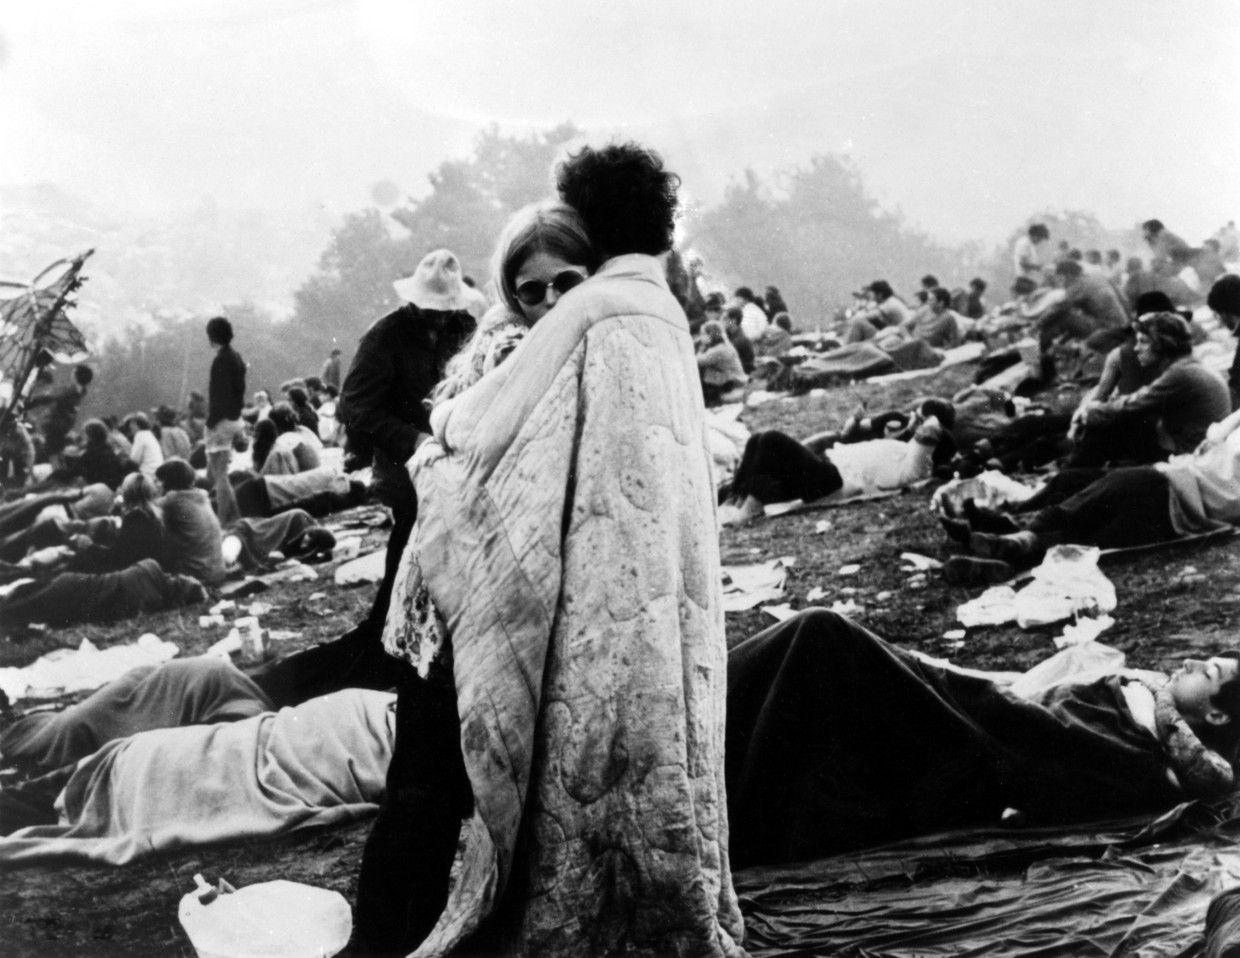 Uit de documentaire 'Woodstock' (1970).